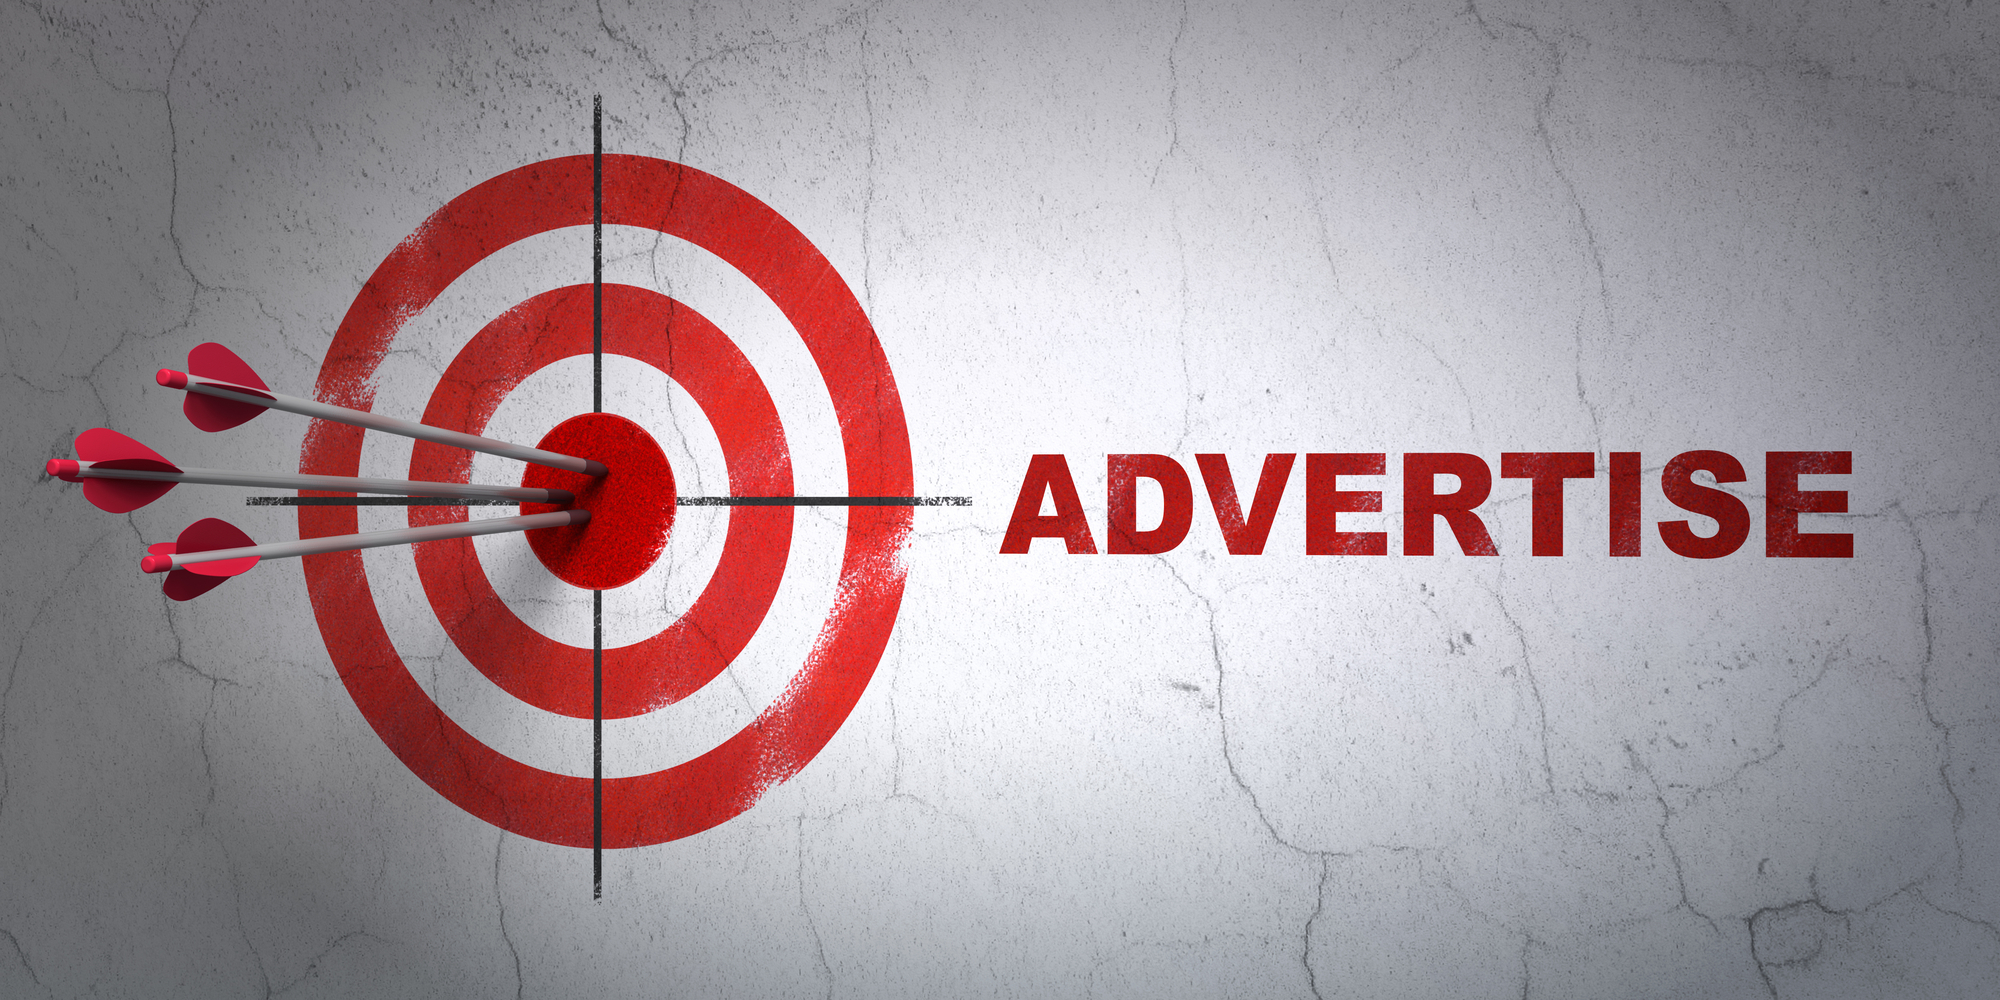 Advertising Advice for Small Business - 50 Ideas - WPamplify